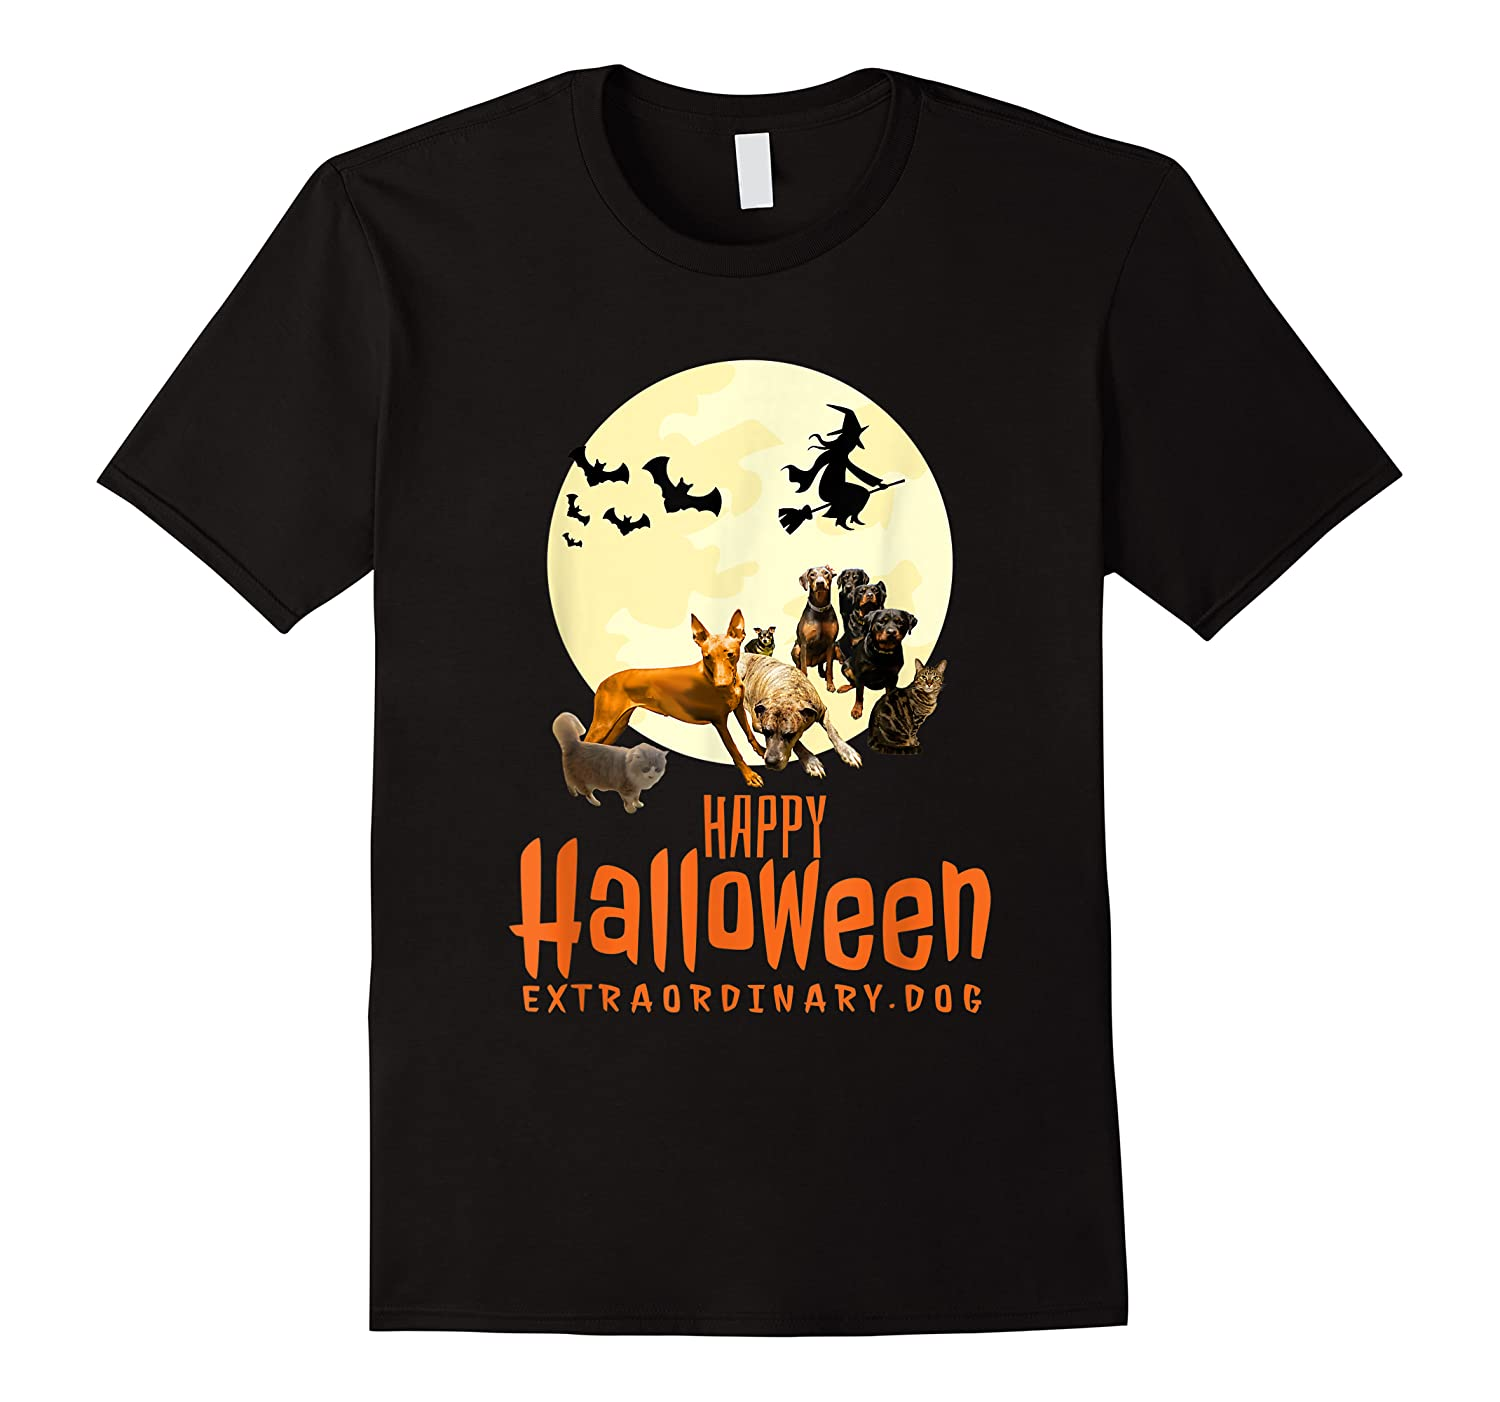 Happy Halloween With Extraordinary Dogs And Cats T Shirt